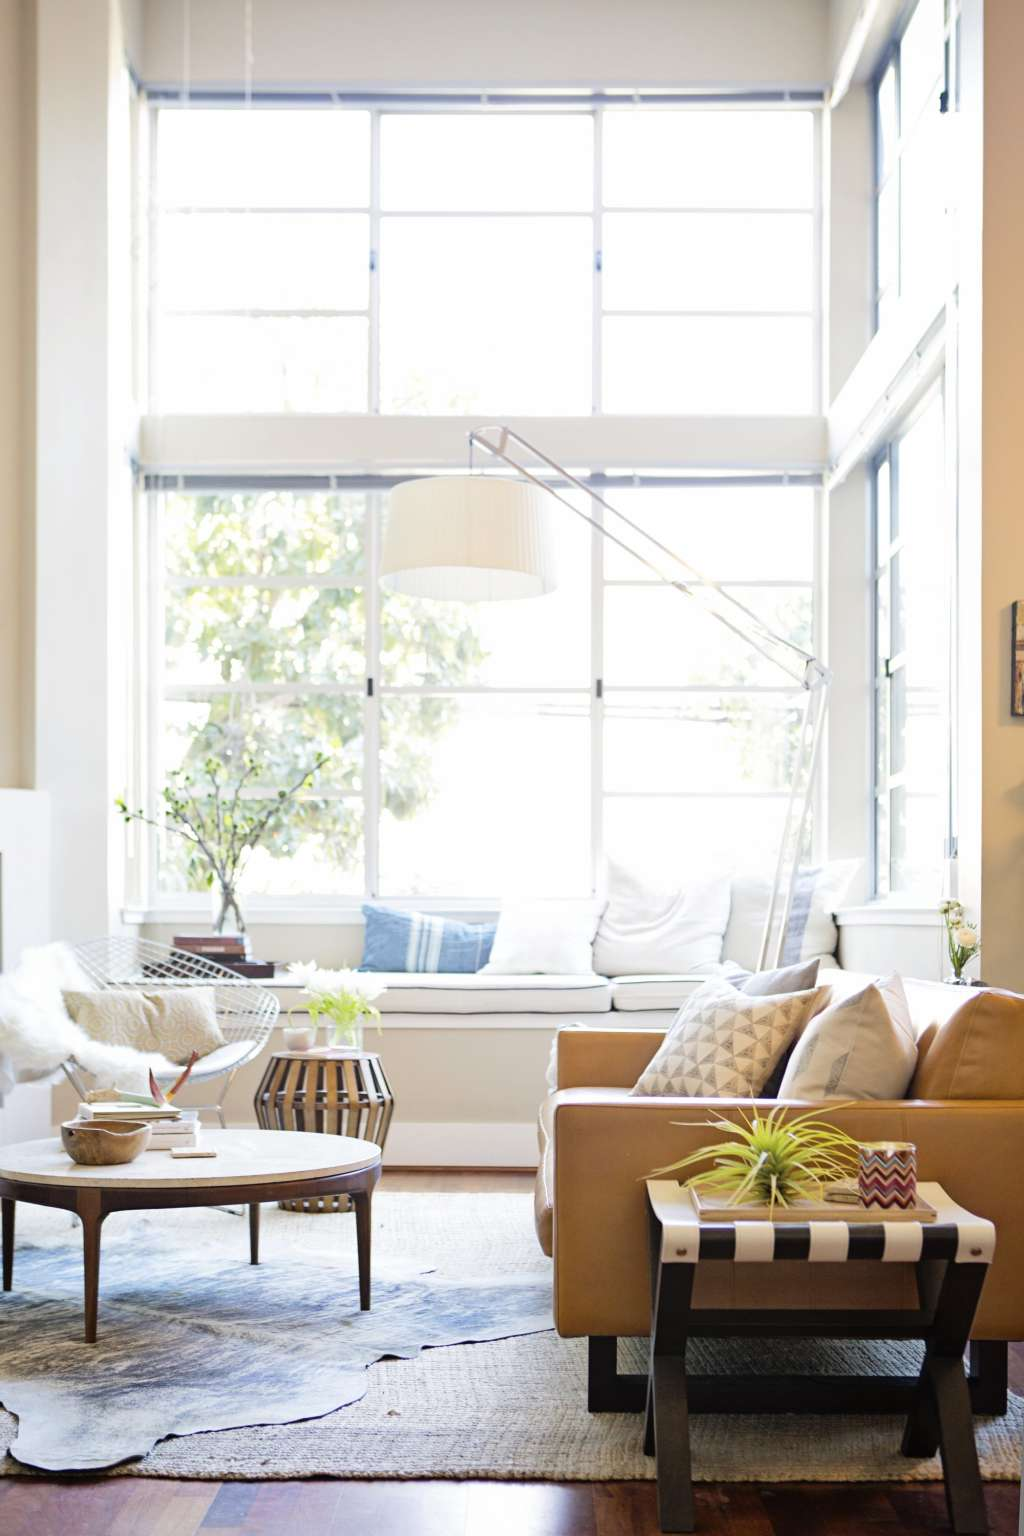 Secrets to Home Staging: 8 Mistakes That Turn Off Potential Buyers